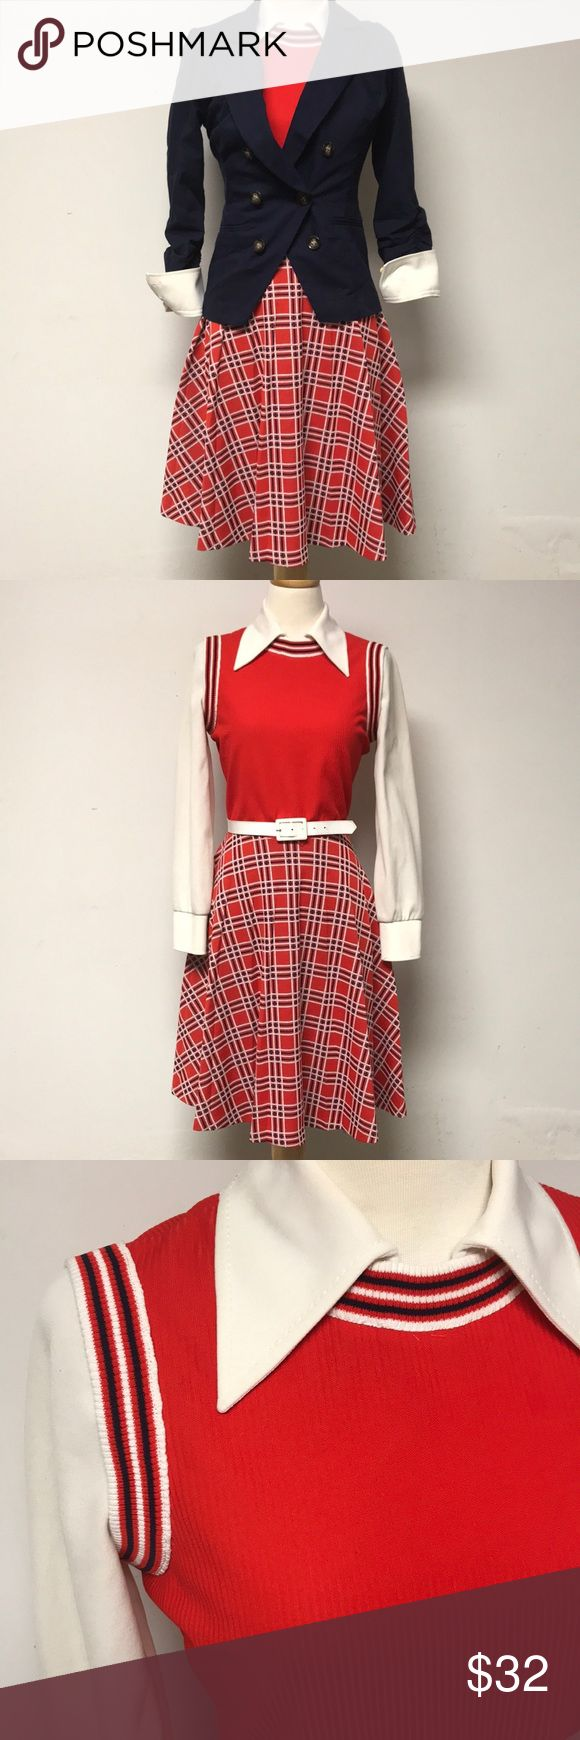 1960s Plaid Secretary/ schoolgirl  Day Dress Fun 1960s orange,navy, off white plaid 100% polyester *le sigh* schoolgirl inspired secretary dress. Channel your inner Mary Tyler Moore. There are some stains throughout the dress including some good old fashioned ring around the collar. Once the collar is folded not noticeable. Girls just wanna have FUN! This dress fits a small best. Measurements taken flat and zipped: Bust: 16 1/2 inches Waist: 13 inches Skirt: open *Navy Blazer sold separately…